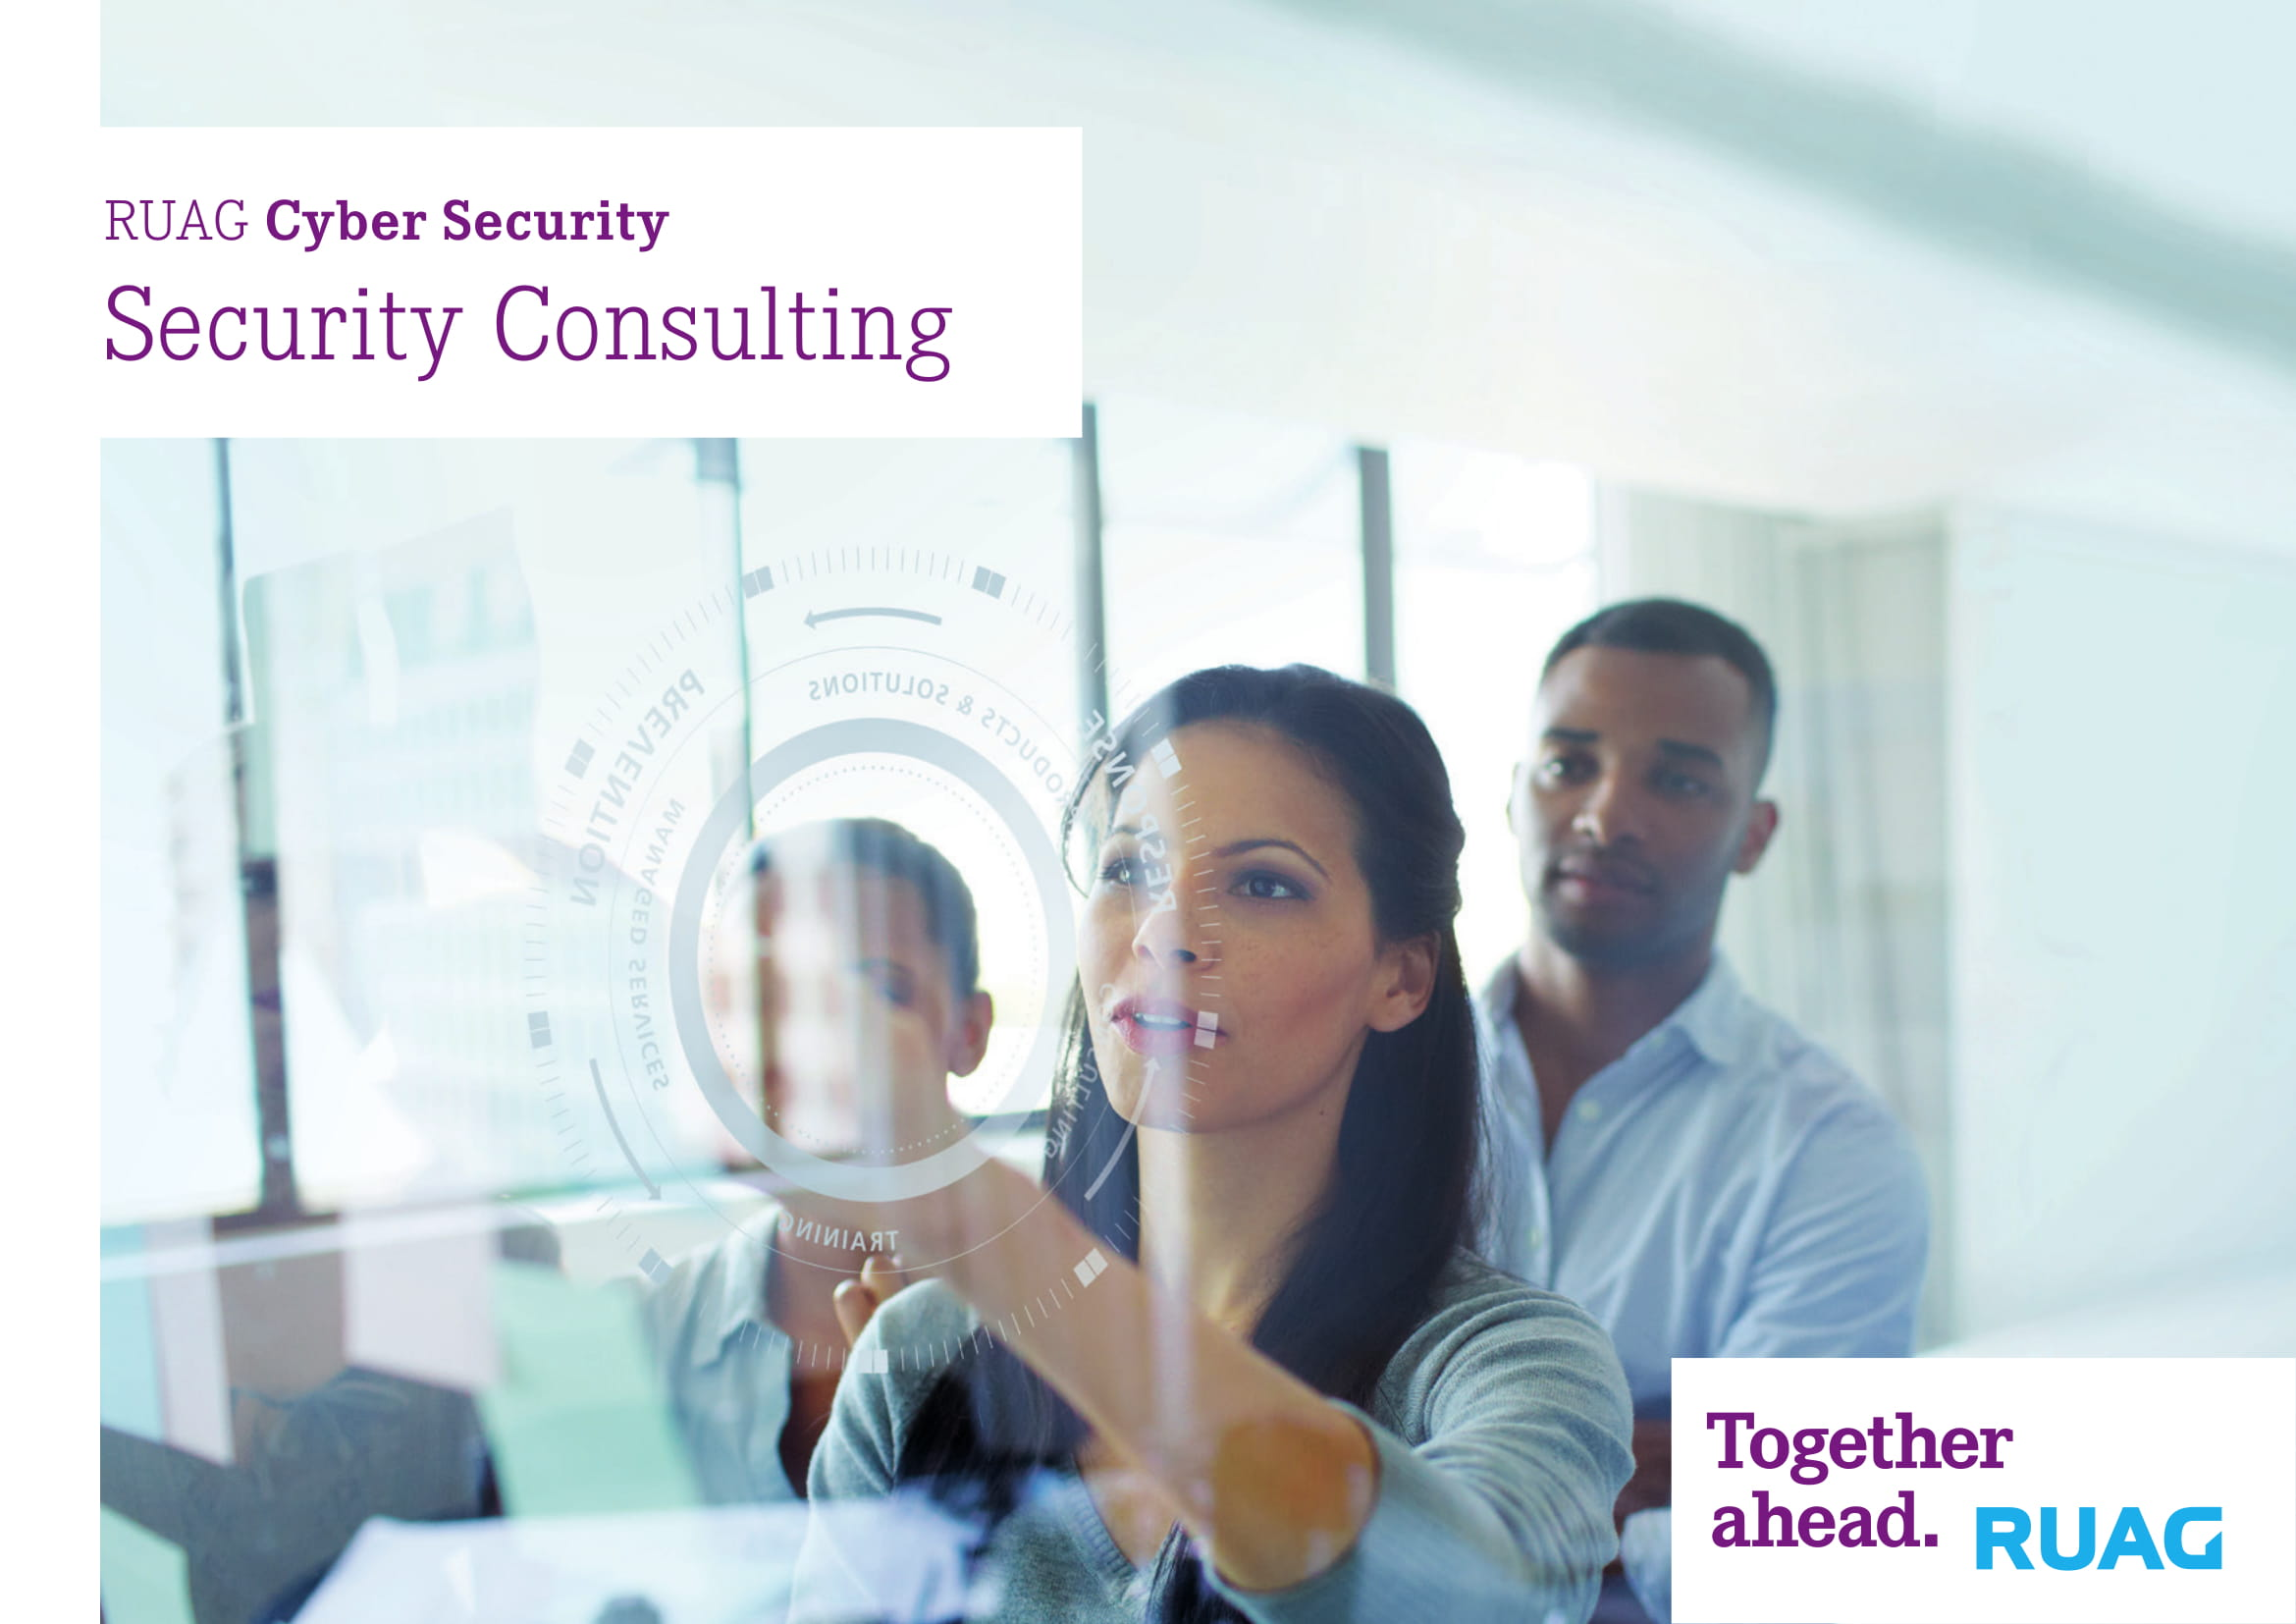 ruag cyber security security consulting